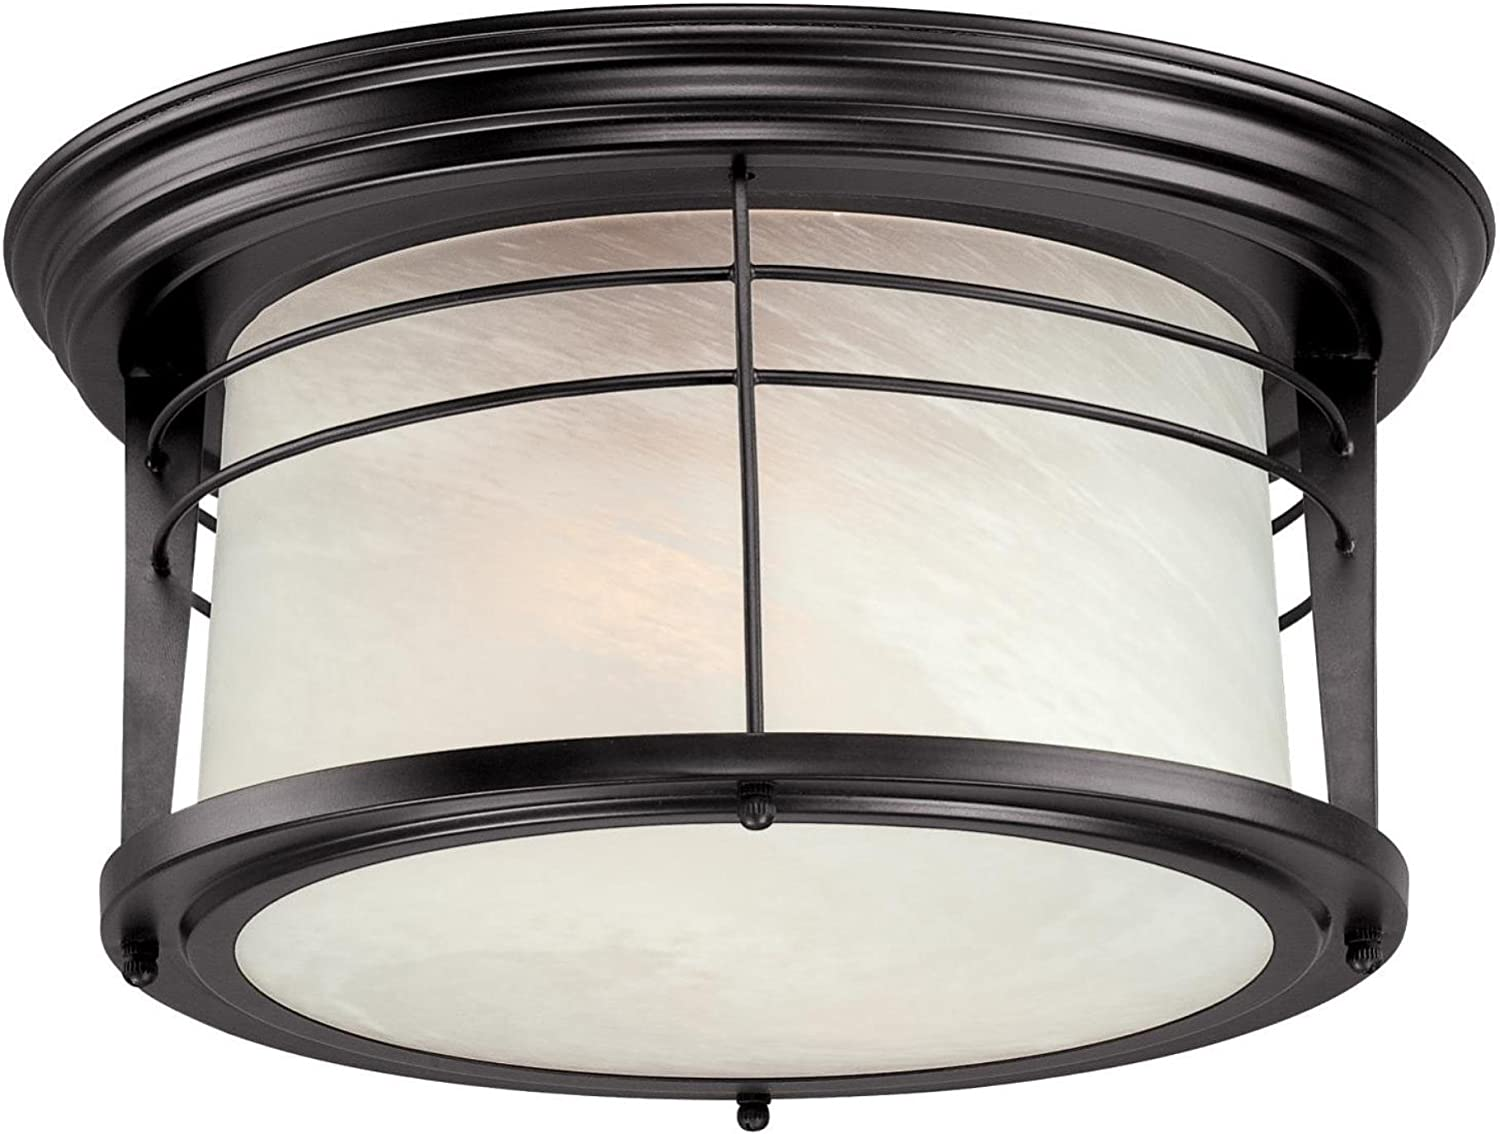 Westinghouse Lighting 05937003861 Westinghouse 6674600 Senecaville Two Light Exterior Flush Mount Fixture Weathered Bronze Finish On Steel With White Alabaster Glass 1 Ceiling Porch Lights Amazon Com